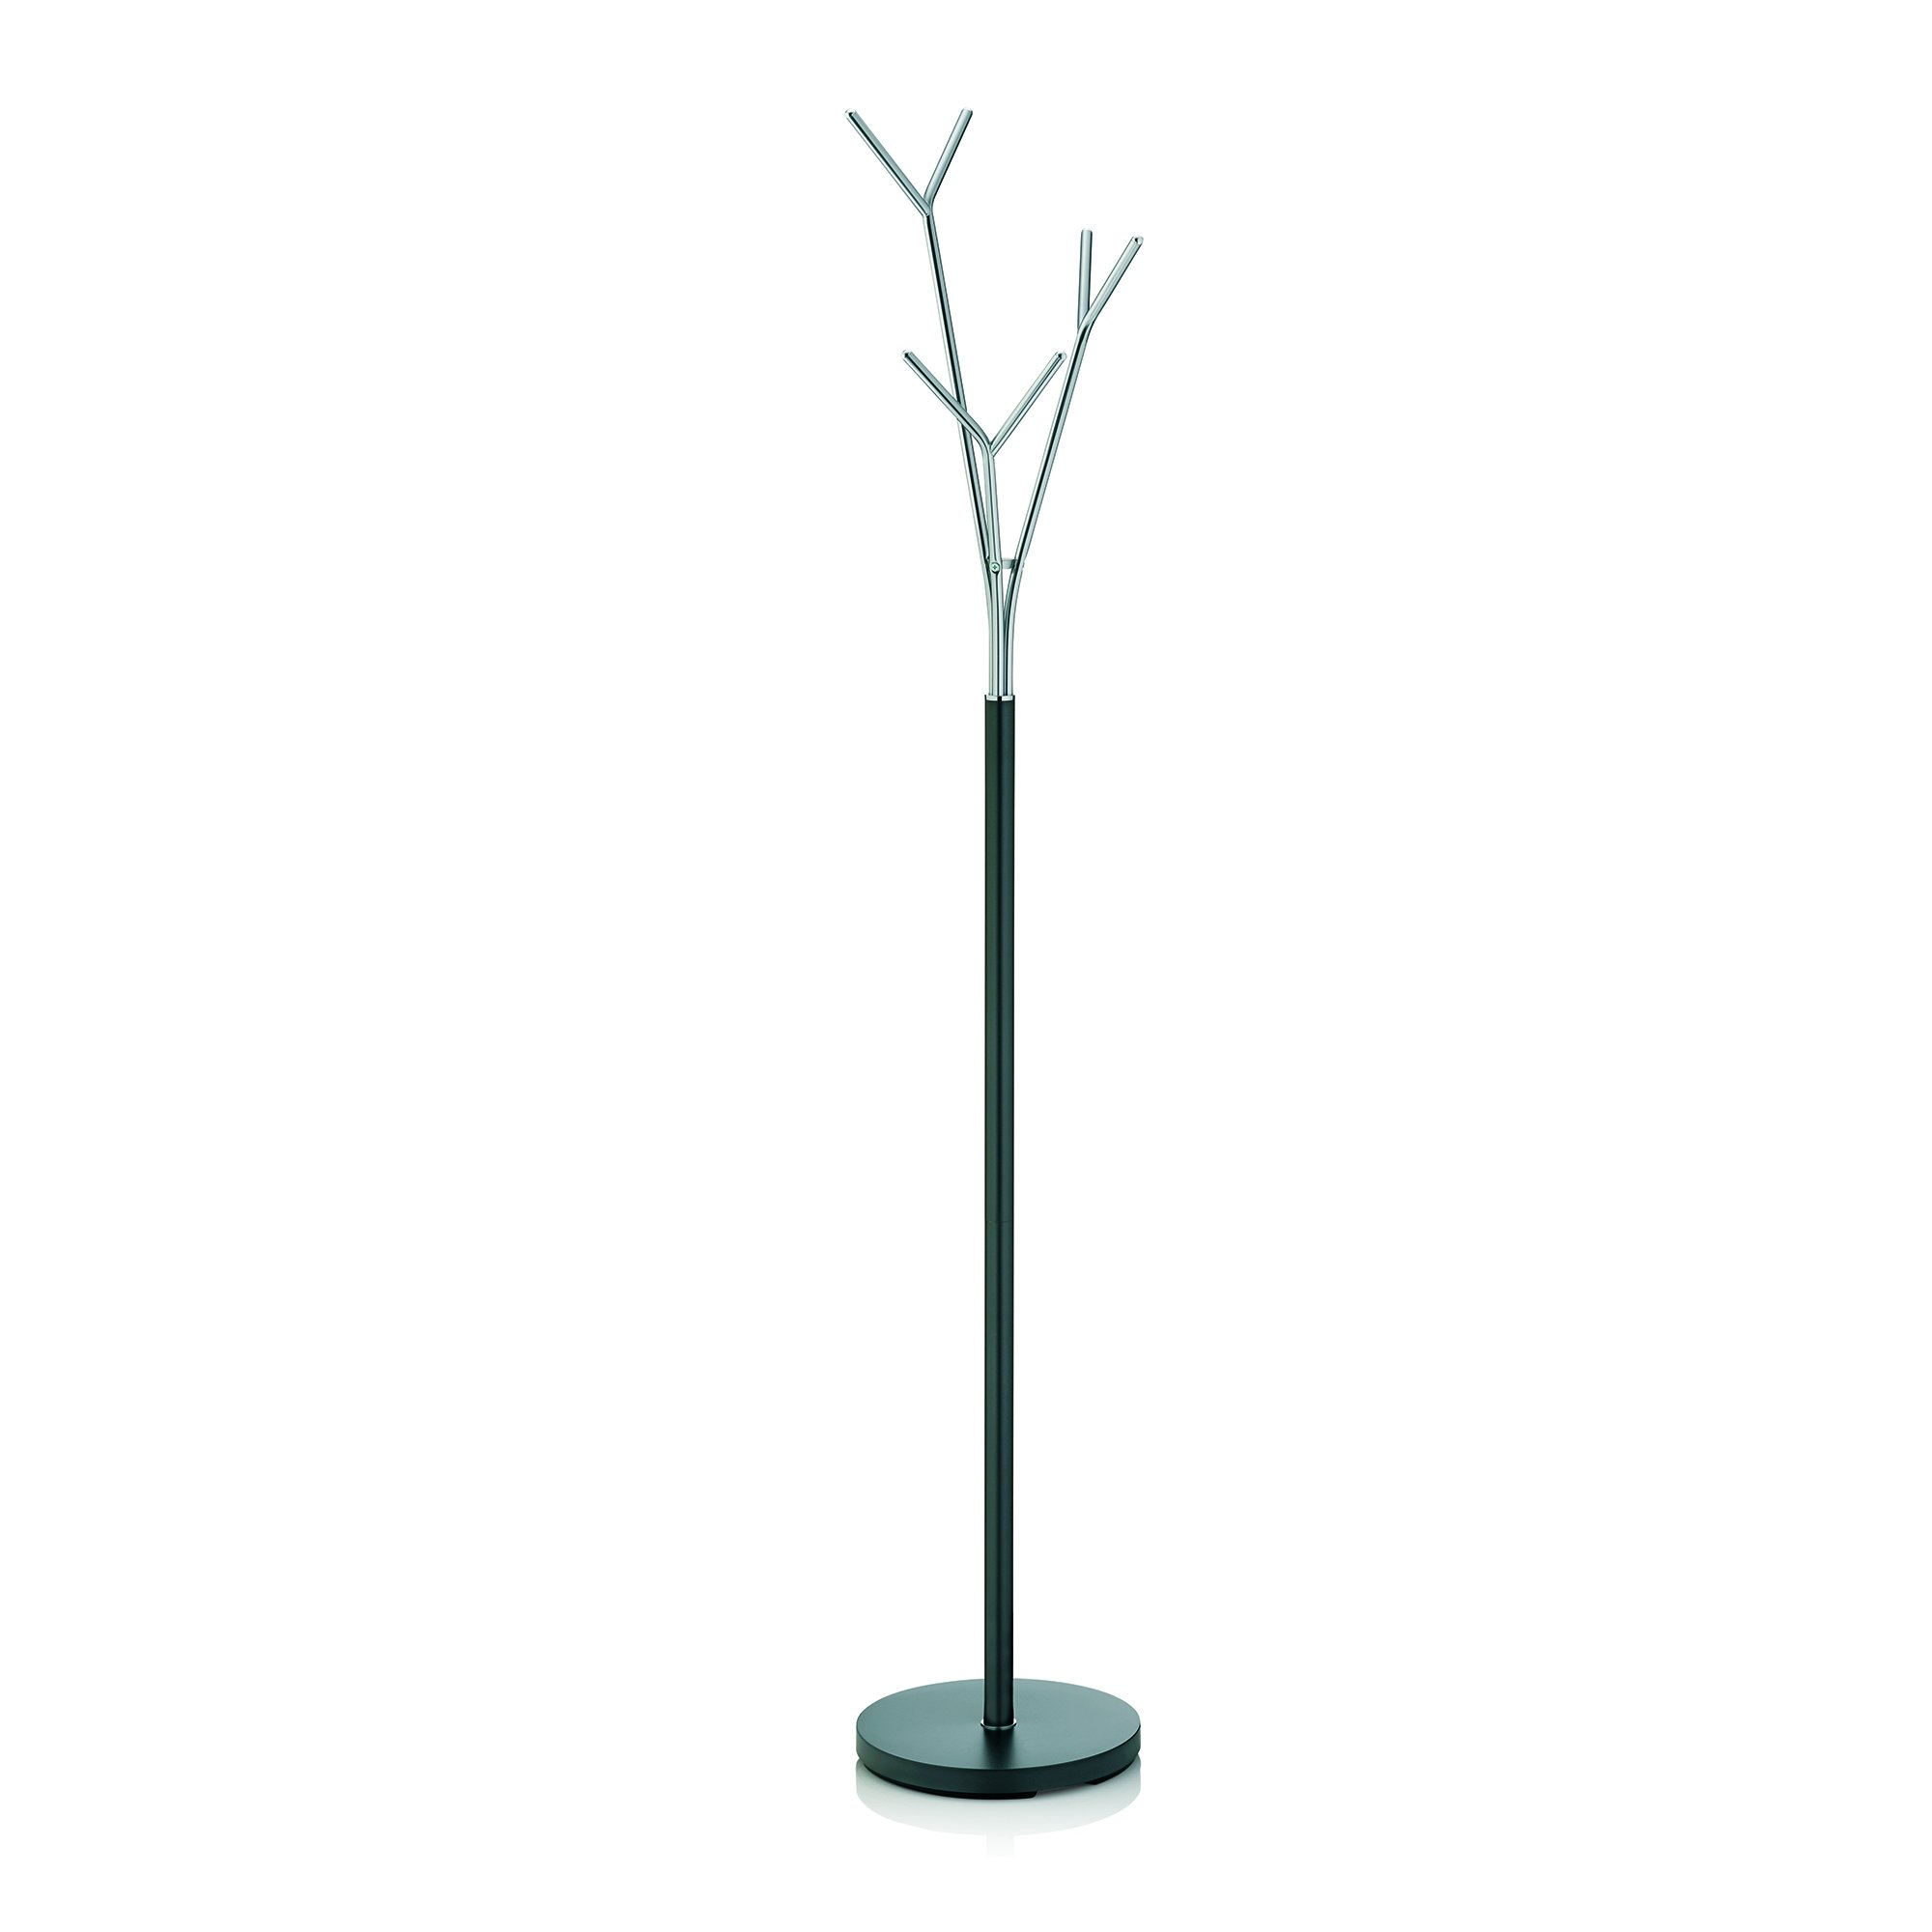 Kela Towel Holder Sinerio Collection, Tree Style, 68.3'' Tall, Metal Chrome